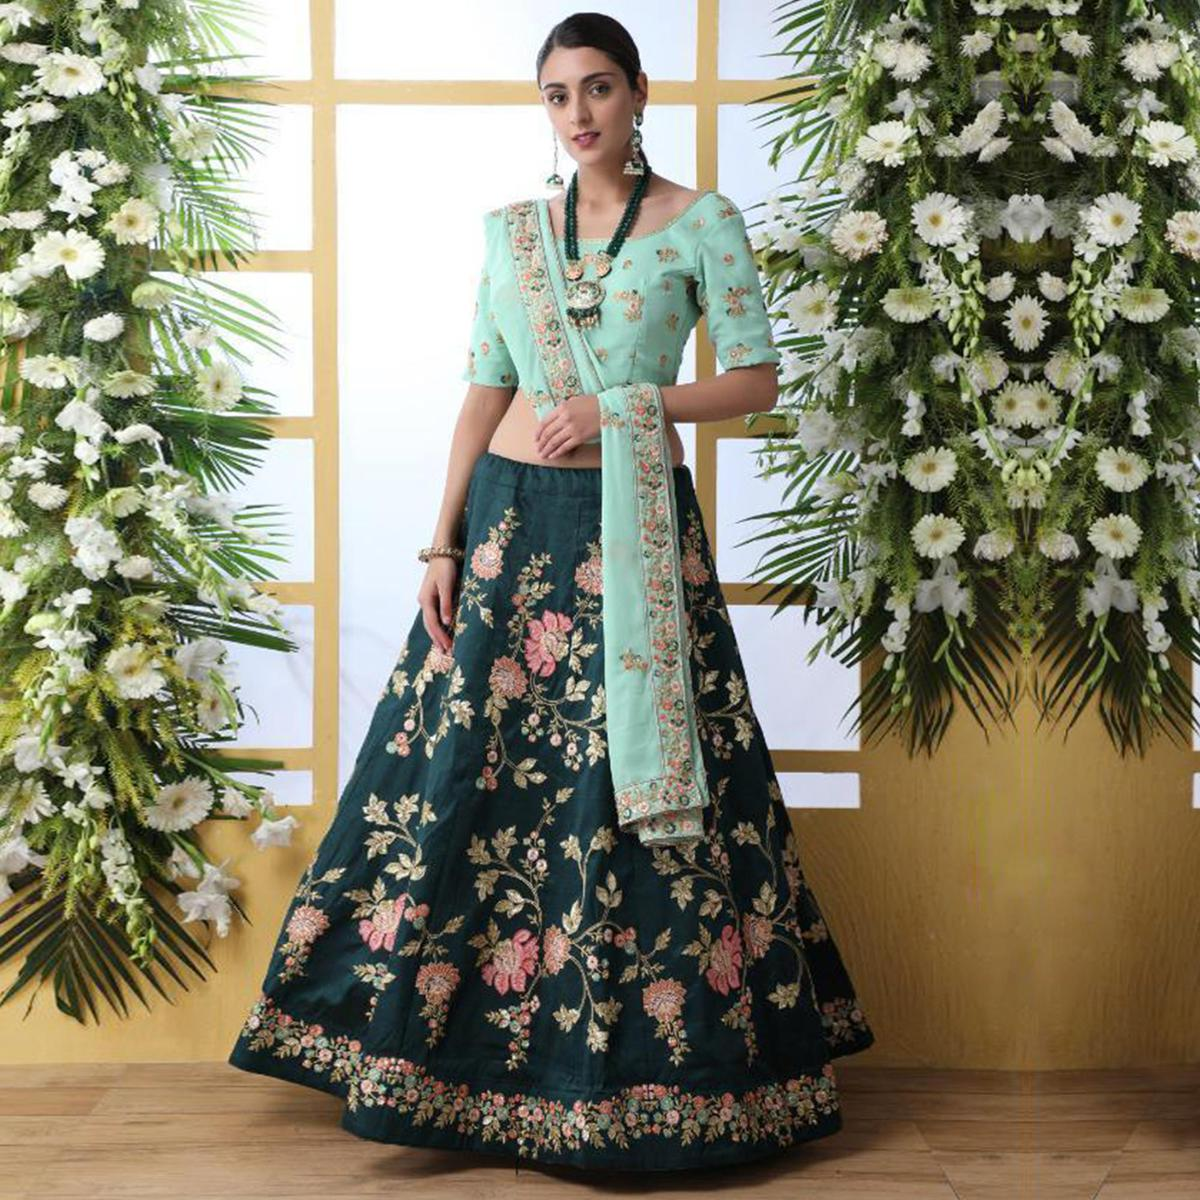 Glowing Teal Green Colored Party Wear Floral Embroidered Art Silk Lehenga Choli